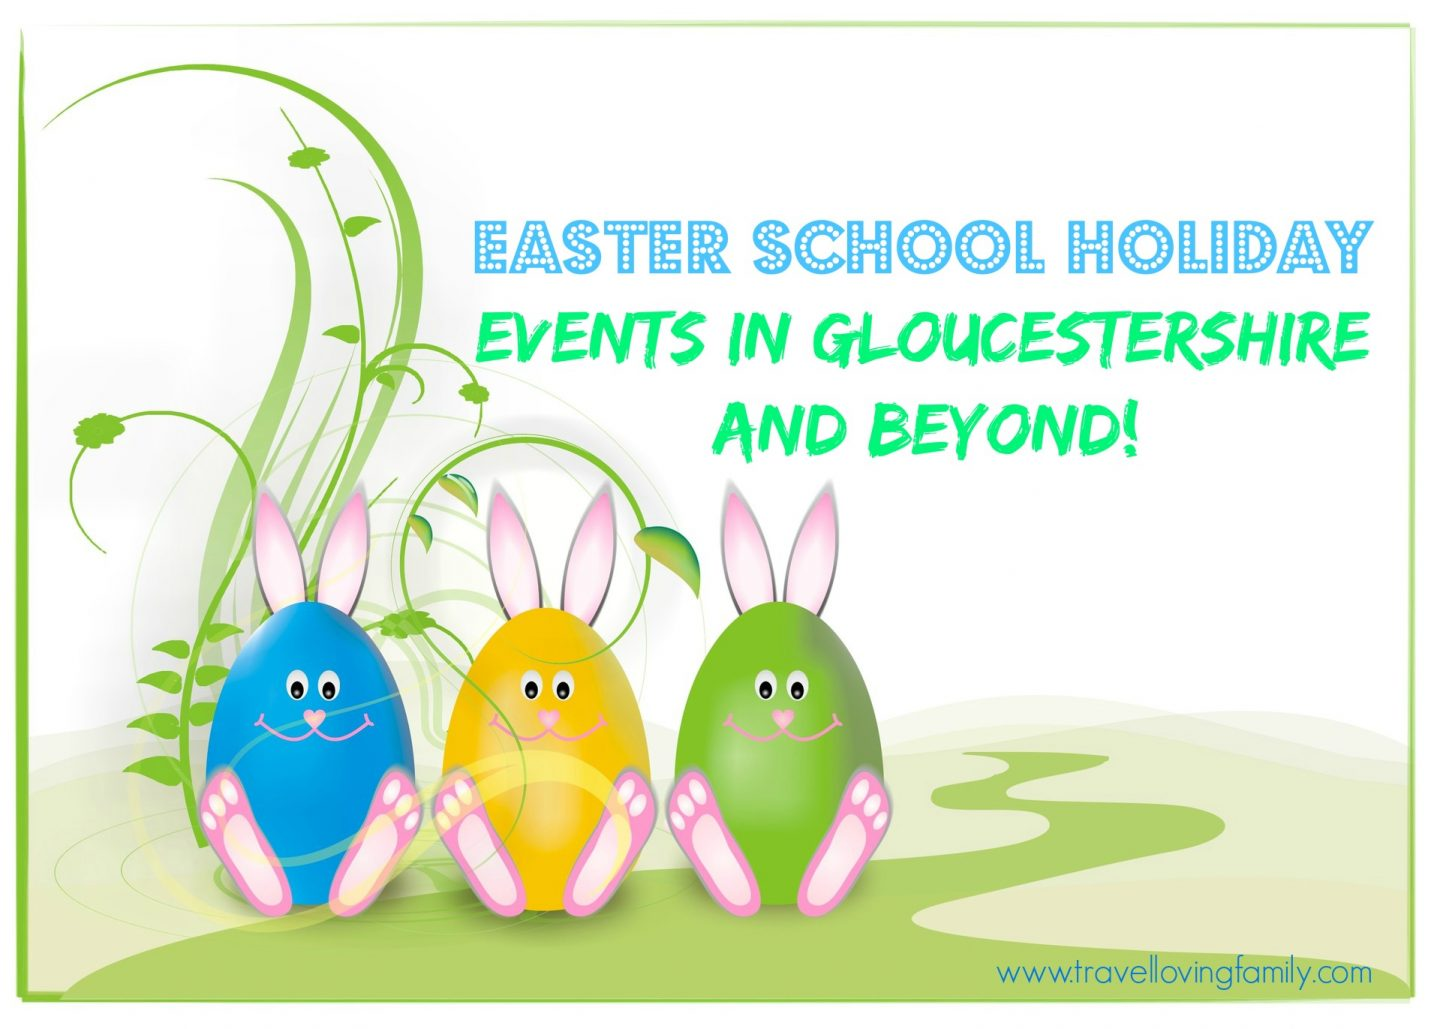 Easter School Holiday Events In Gloucestershire And